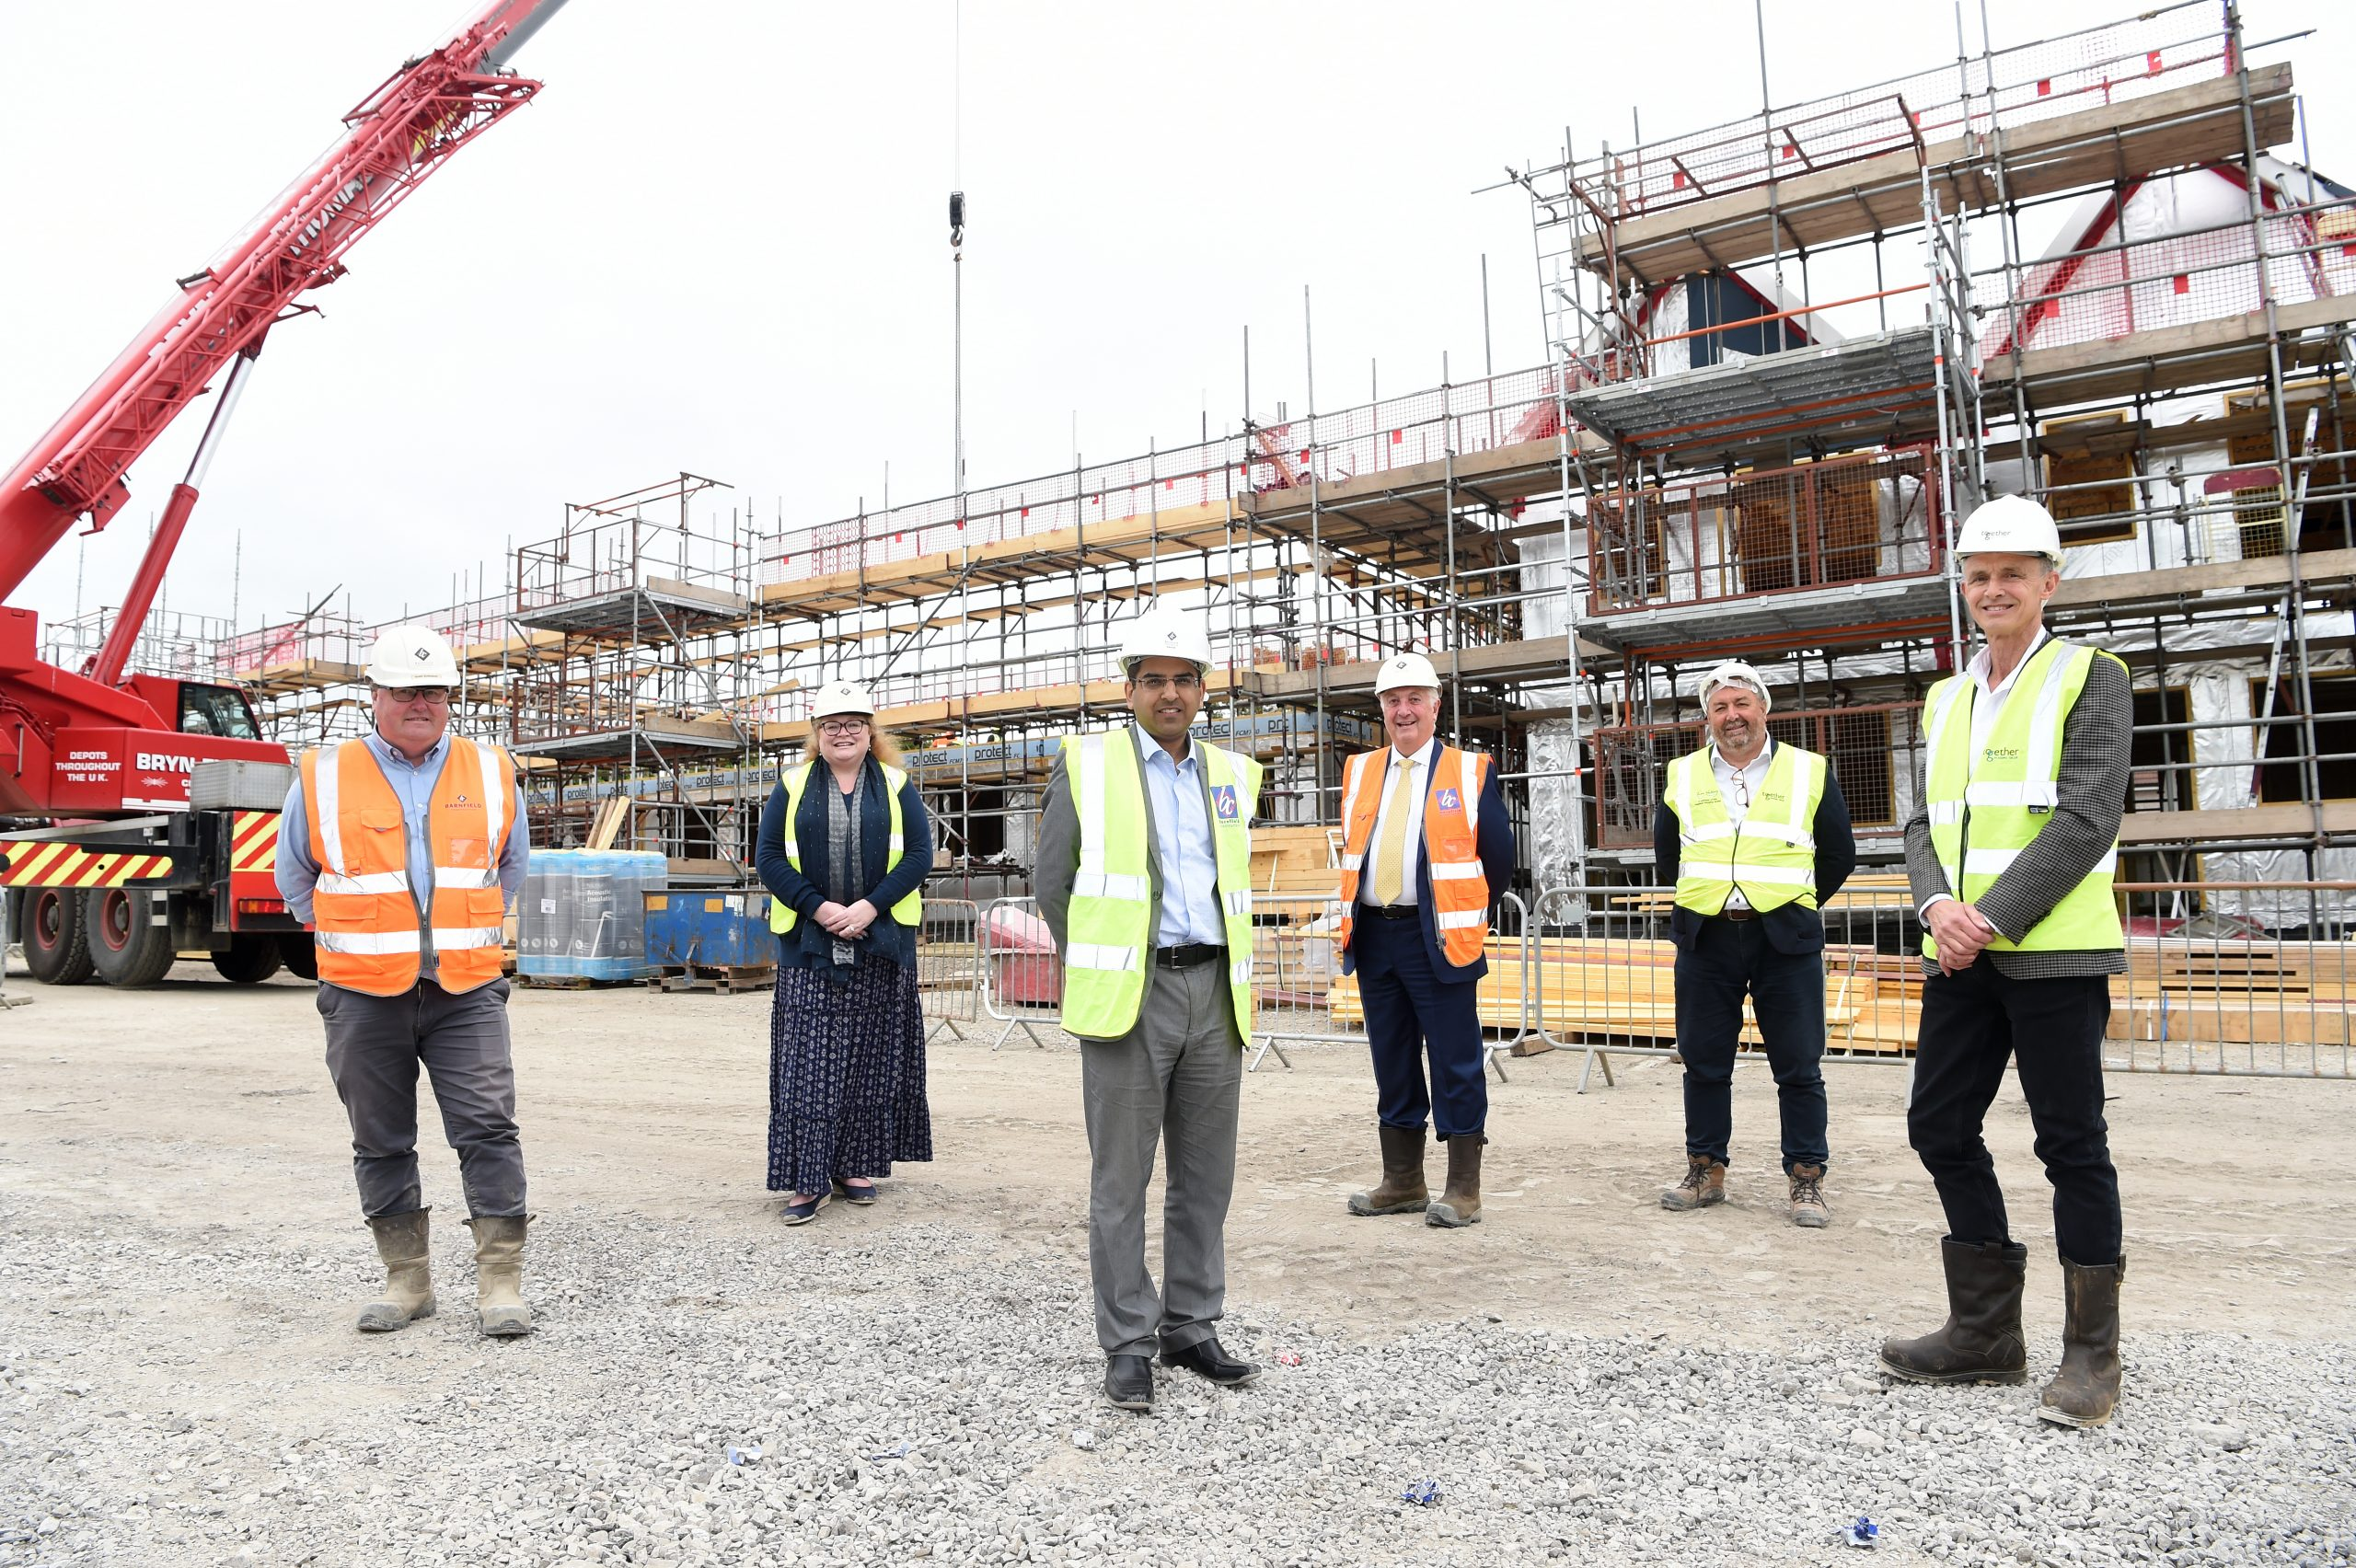 Colne welcomes new homes with renewable energy